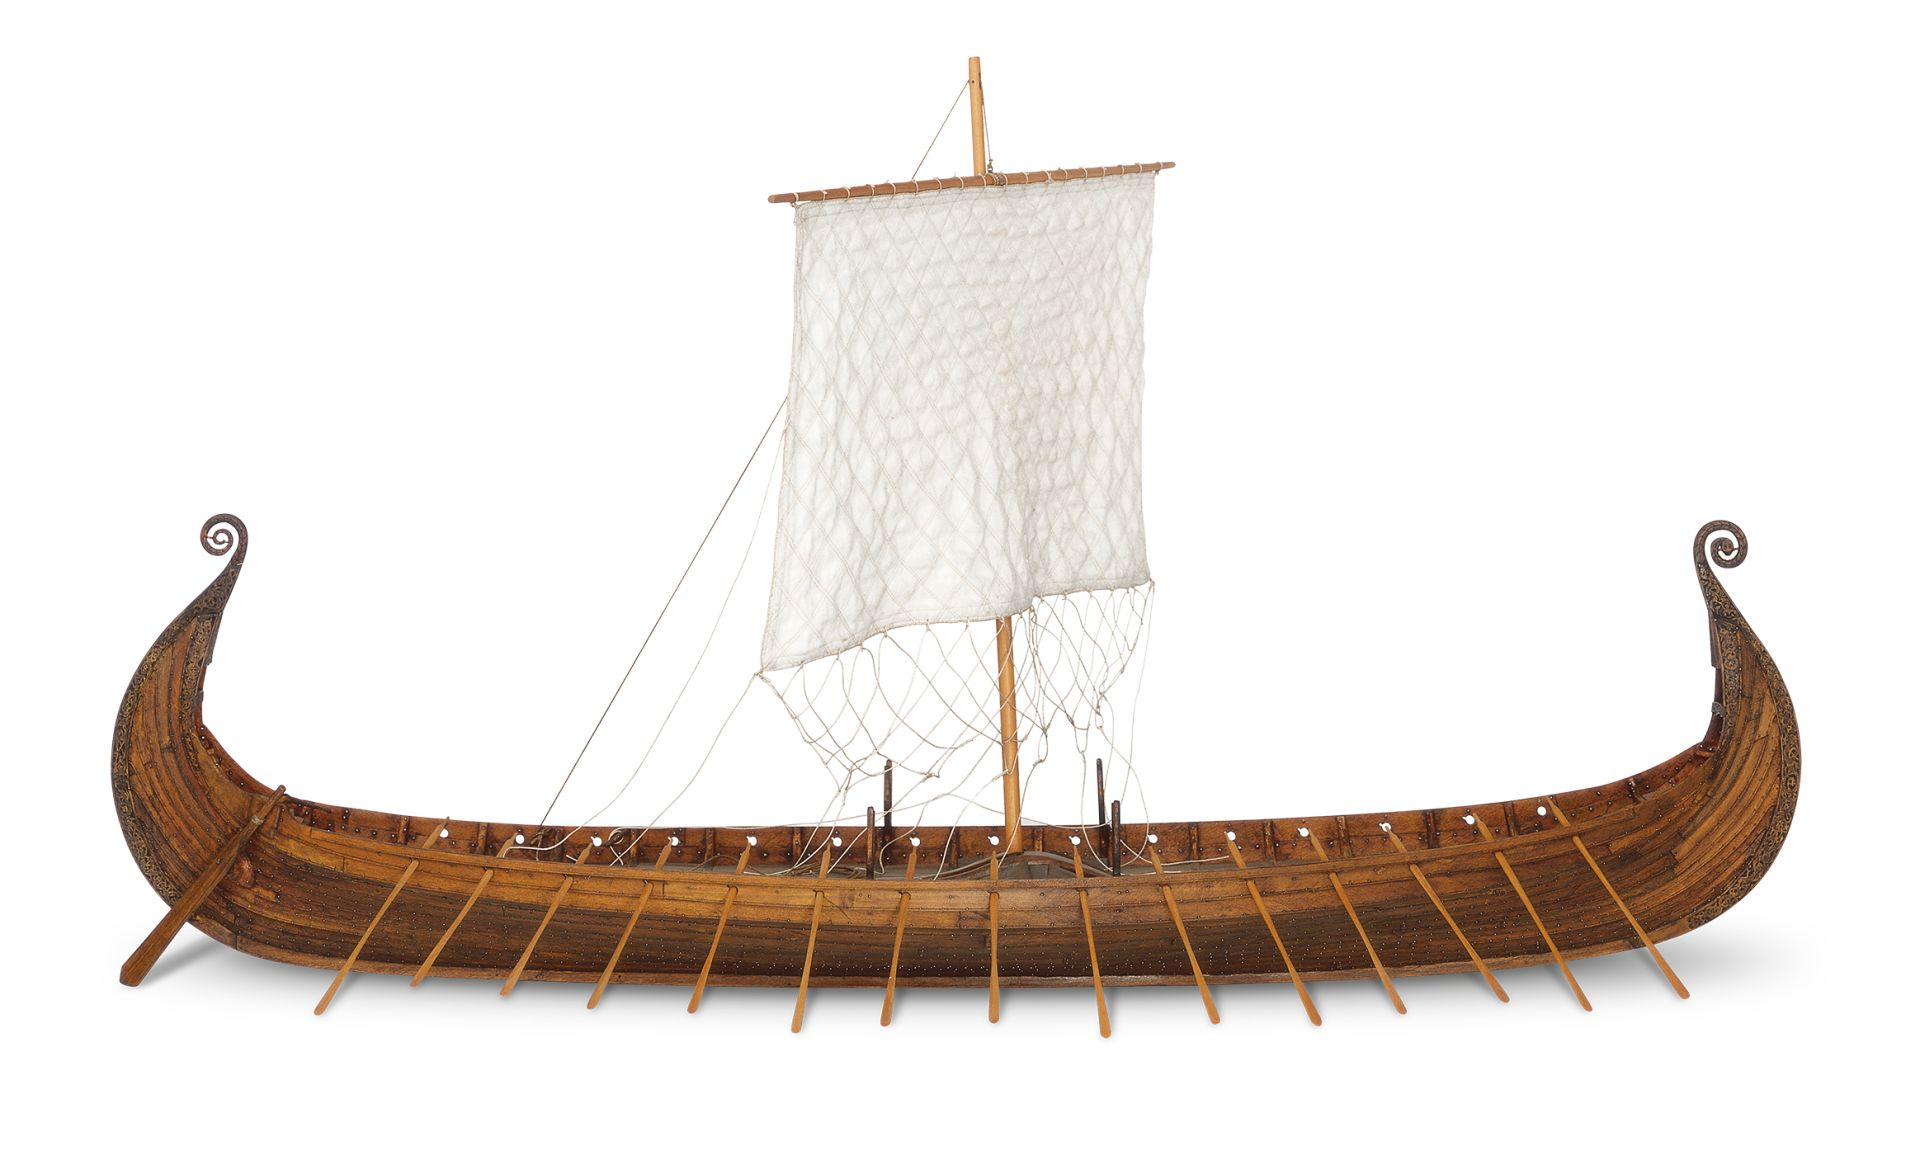 Viking Longboat | Facts About Viking Boats | DK Find Out